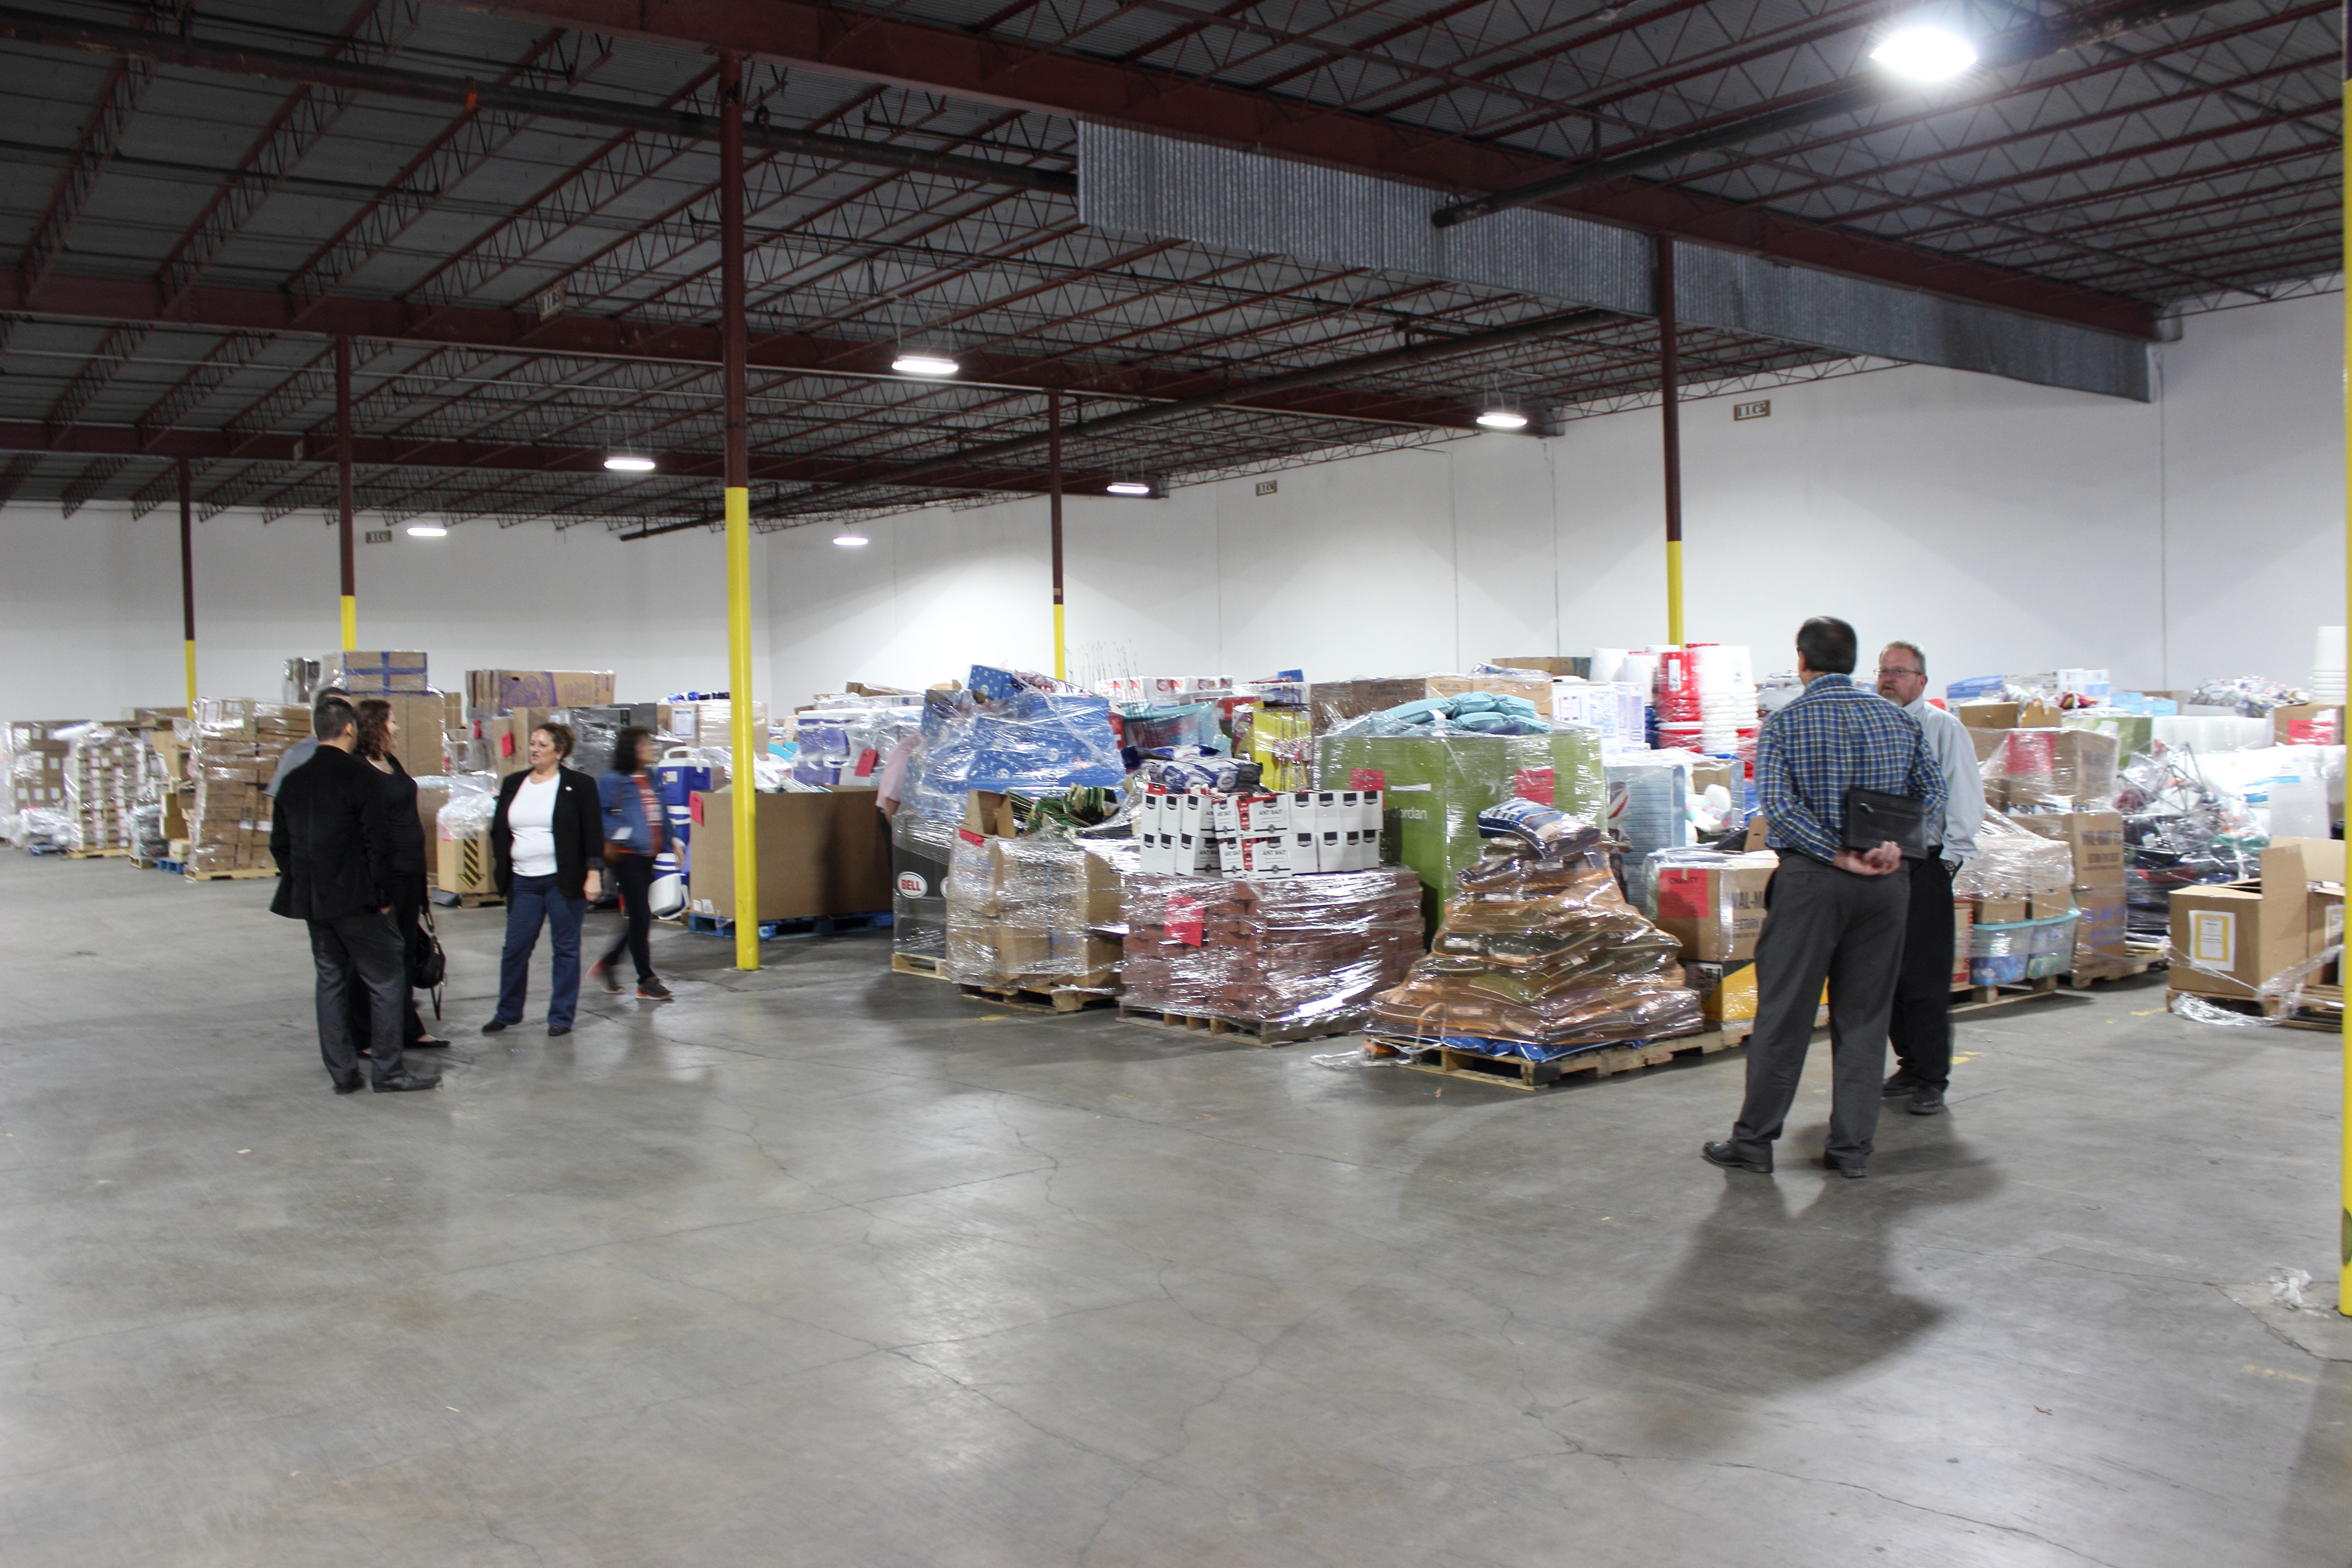 Salvation Army Dispensary Warehouse Walmamrt Donation_0012.JPG